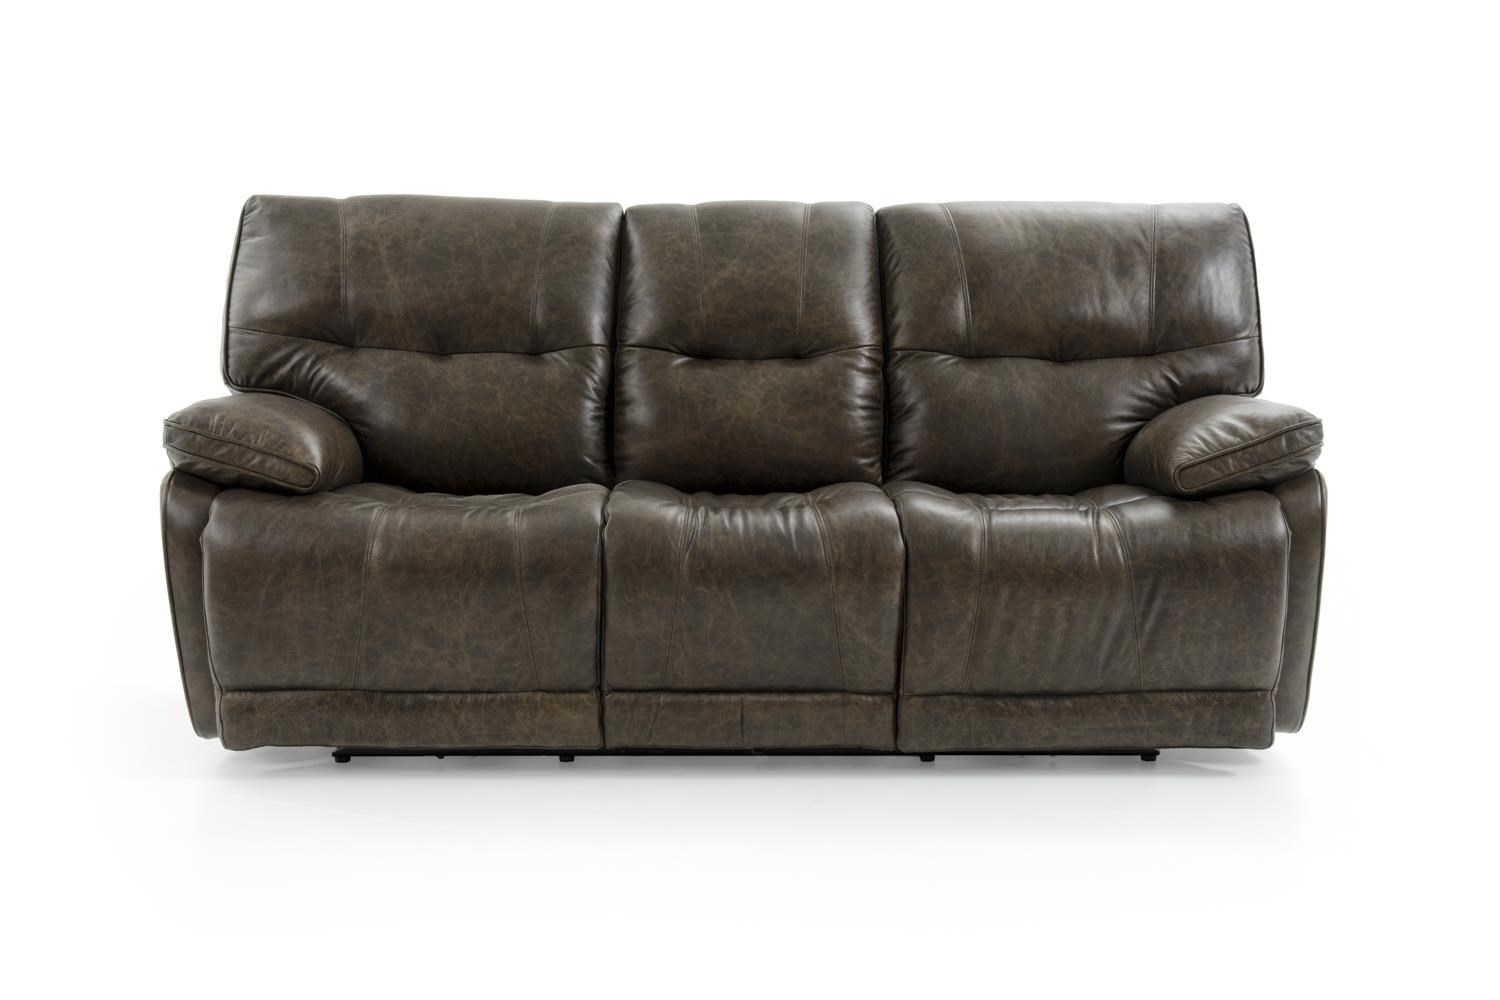 Futura Leather E1288 Electric Motion Sofa - Item Number: E1288-317 2185H